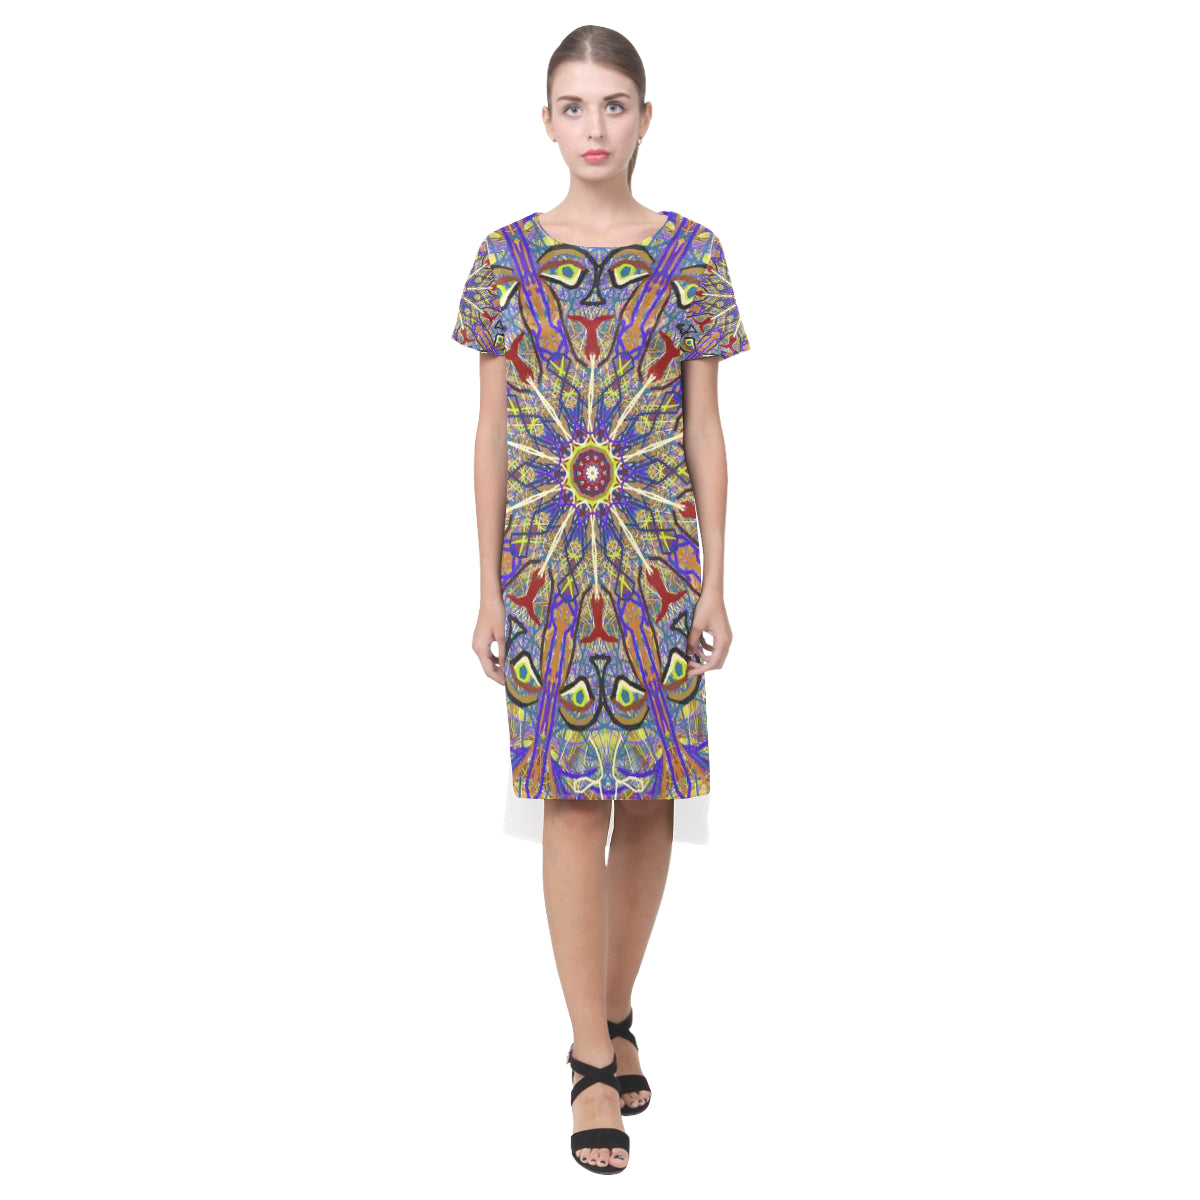 Thleuedron Thoth Short Sleeves Casual Dress(Model D14) - Thleudron